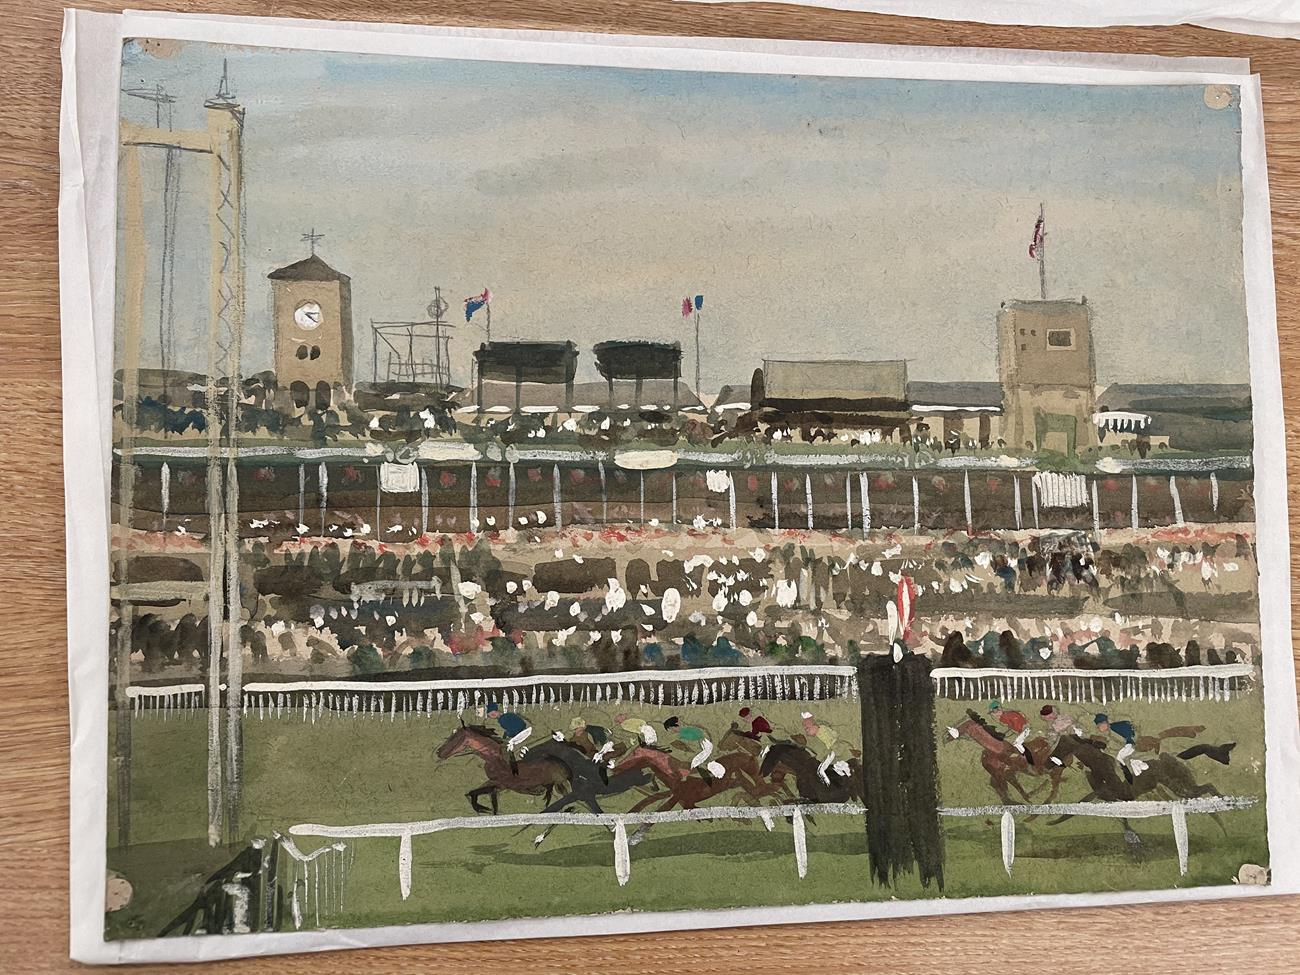 Joseph Appleyard (1908-1960) ''Doncaster, Races'' Mixed media, 28.5cm by 38.5cm (unframed) Artist' - Image 2 of 5